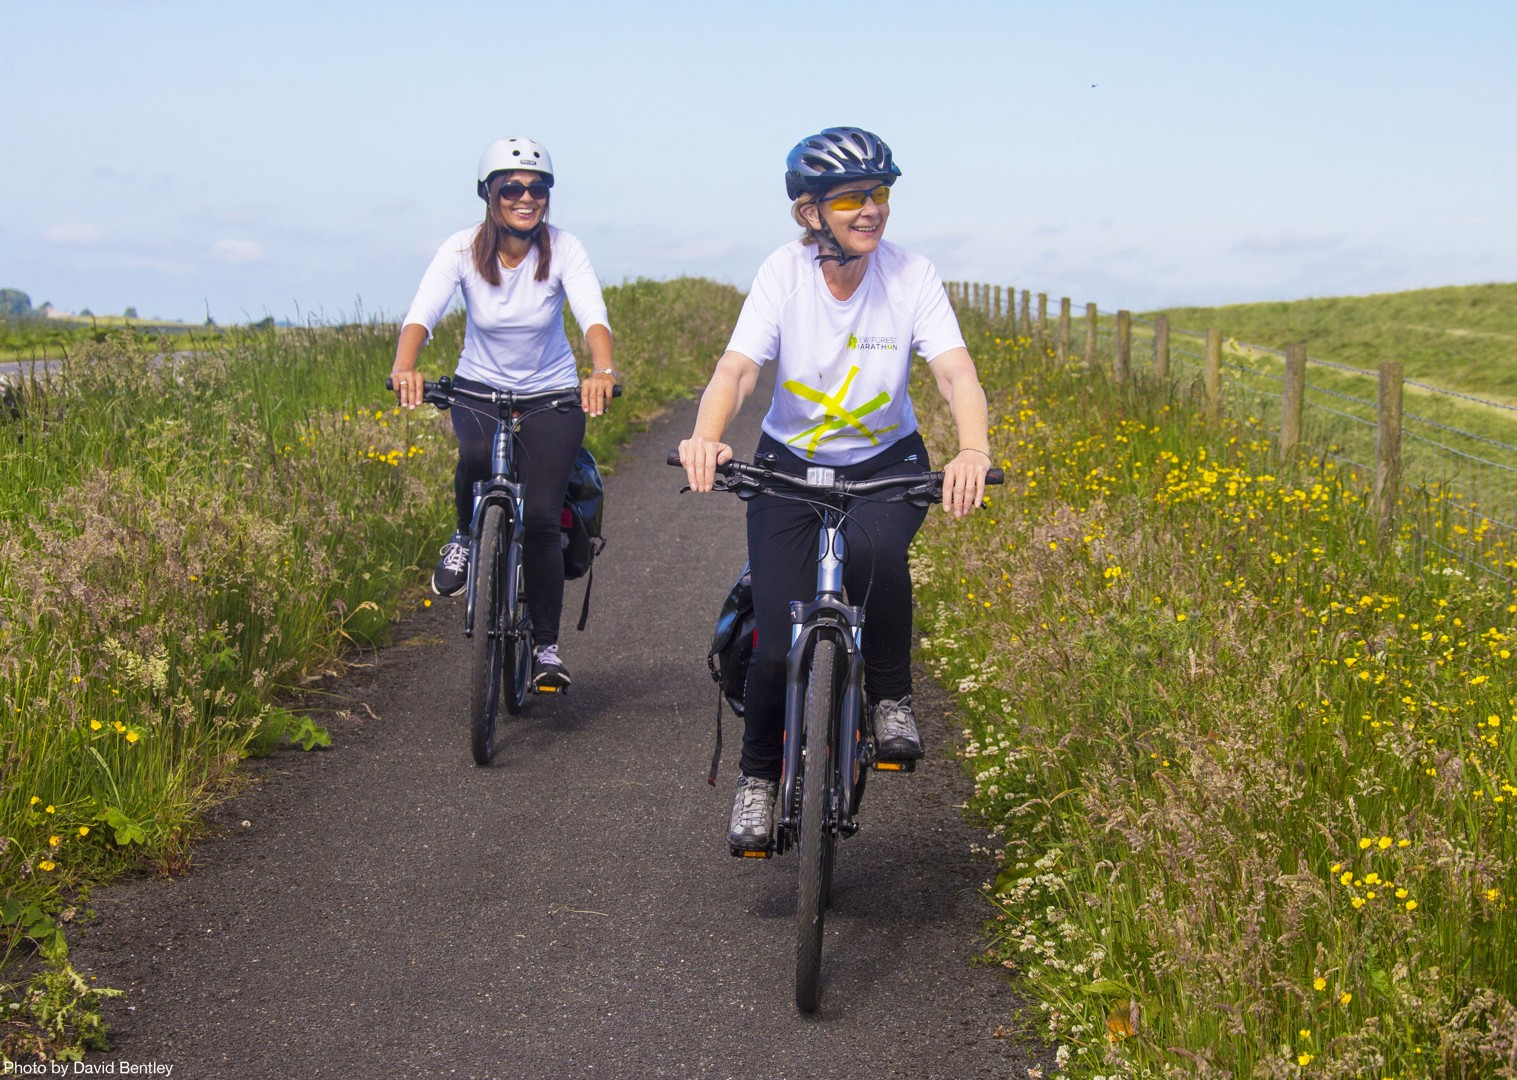 UK-Hadrians-Cycleway-Self-Guided-Leisure-Cycling-Holiday-riding.jpg - UK - Hadrian's Cycleway - 6 Days Cycling - Self-Guided Leisure Cycling Holiday - Leisure Cycling